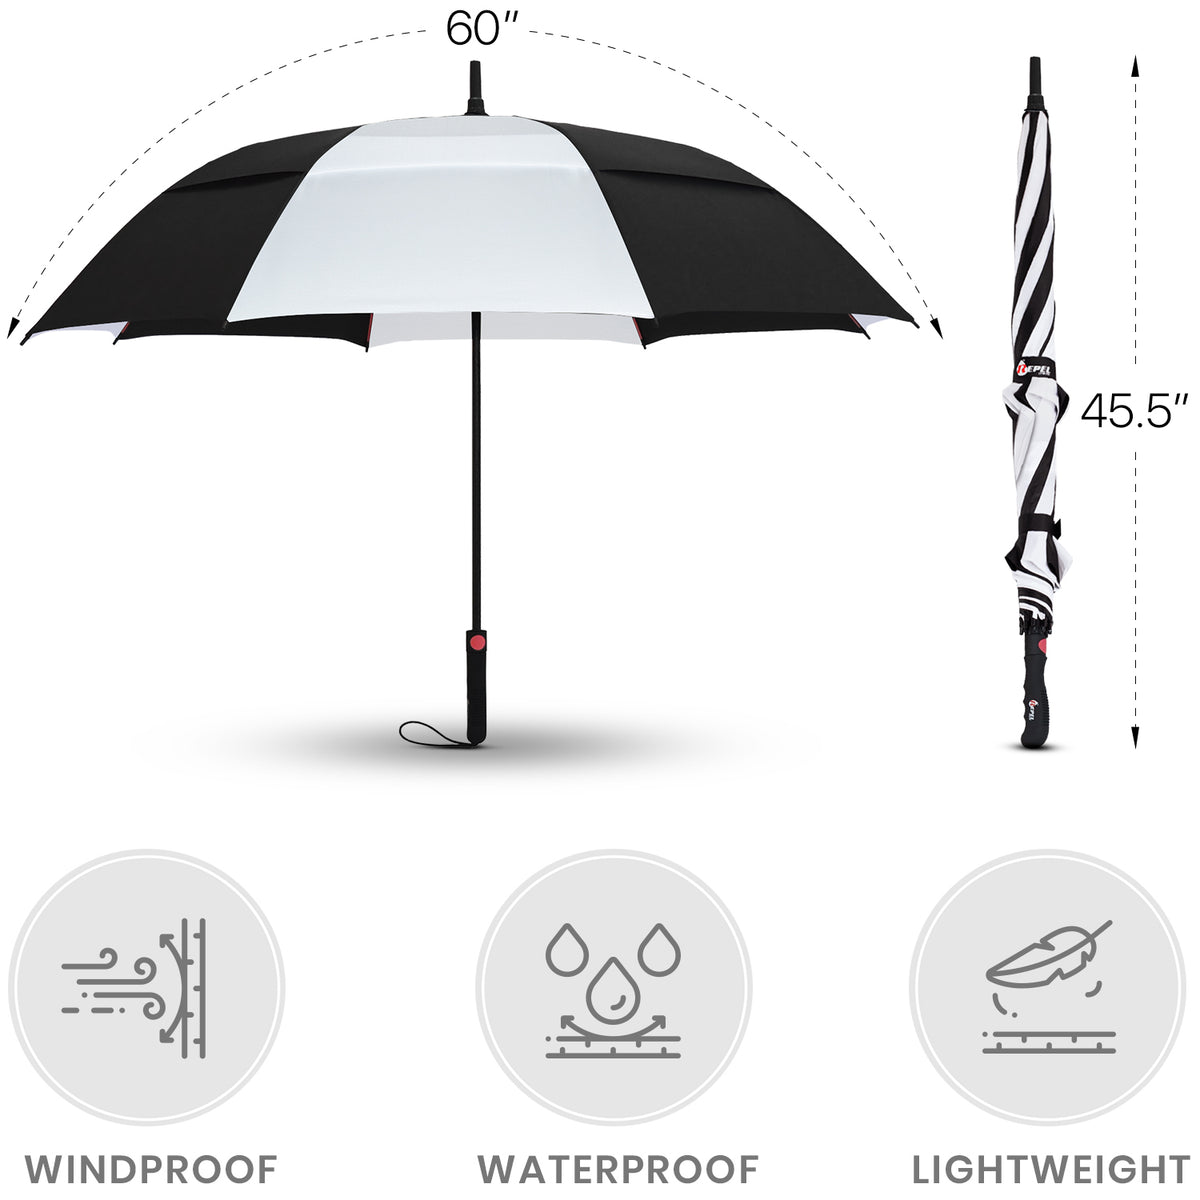 Black and White Golf Umbrella